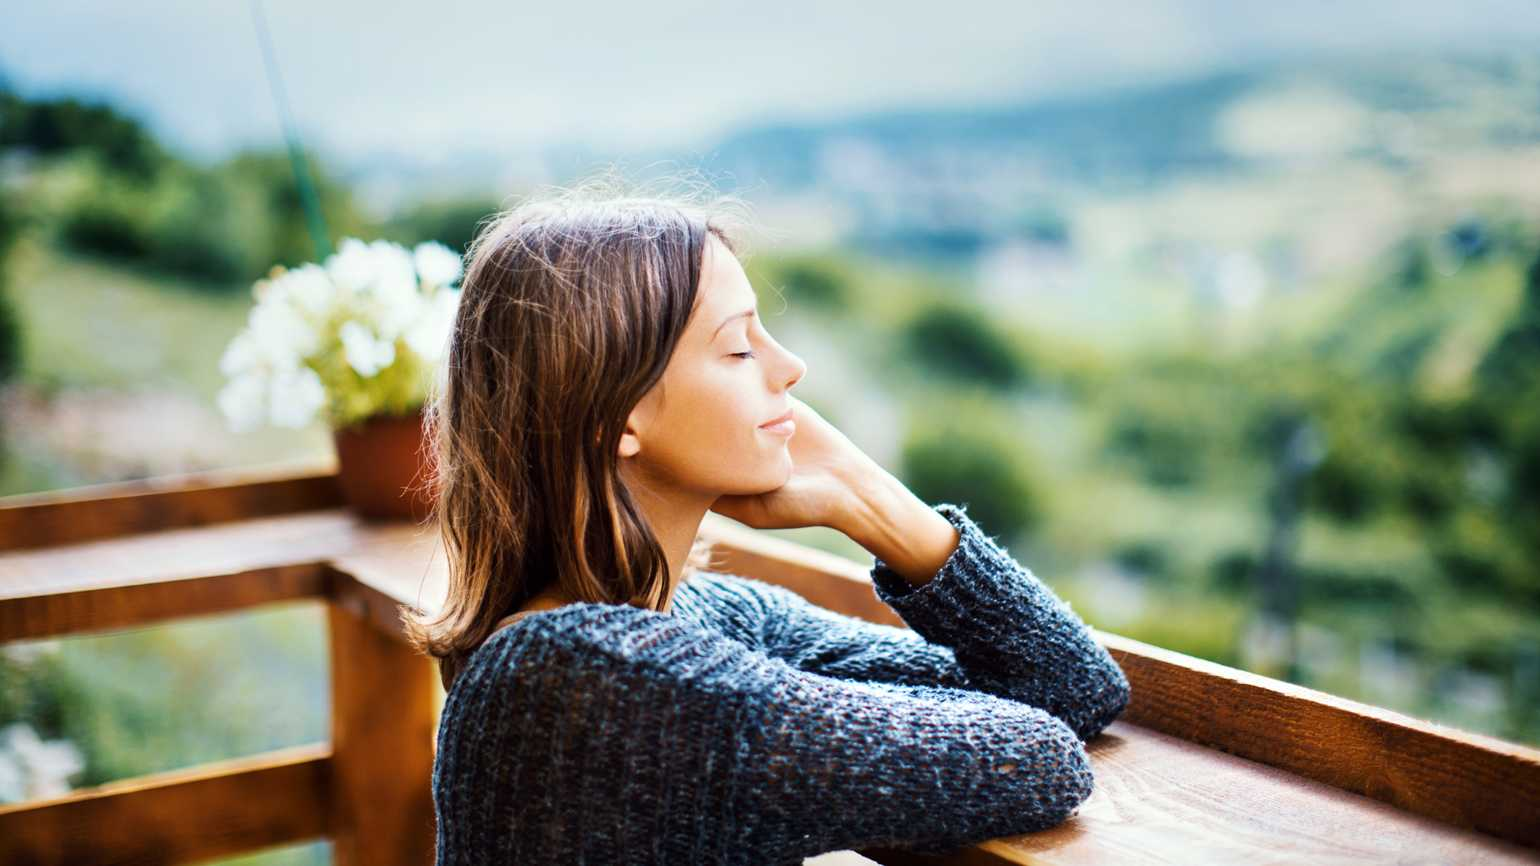 A woman with a calm mindset and closed eyes enjoying the outdoors.